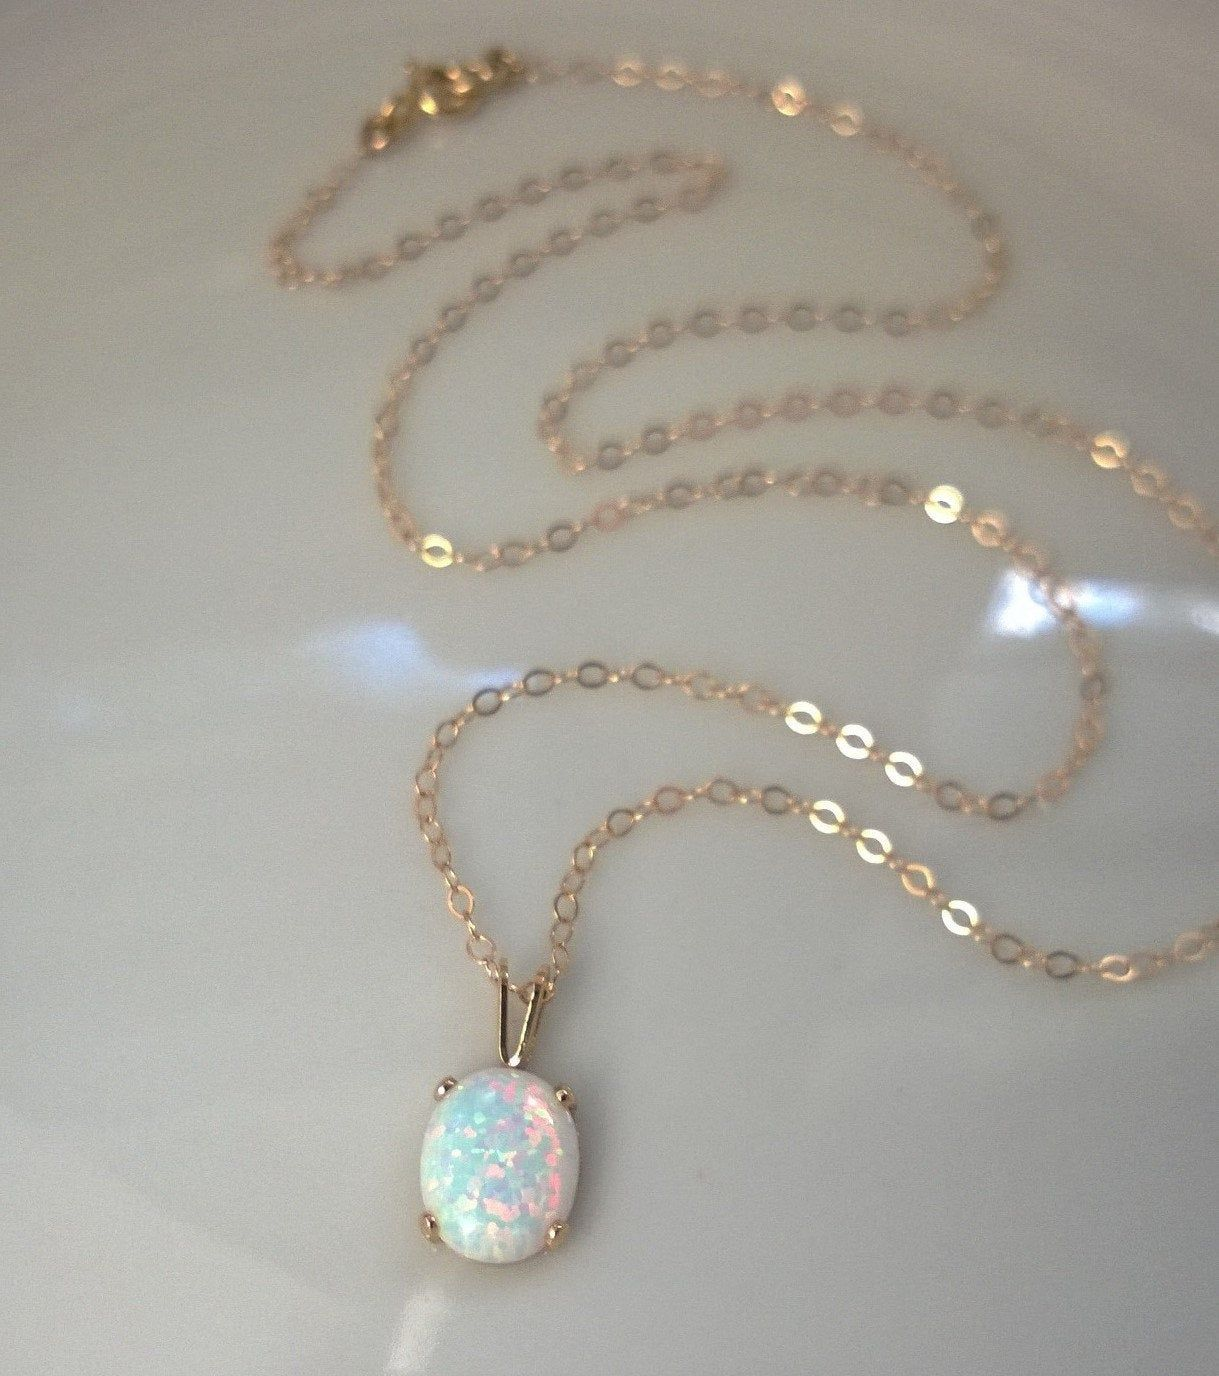 Pin By Gemstone Jewelry Uralsmaster On Things To Wear Opal Pendant Necklace October Birthstone Necklace Opal Necklace